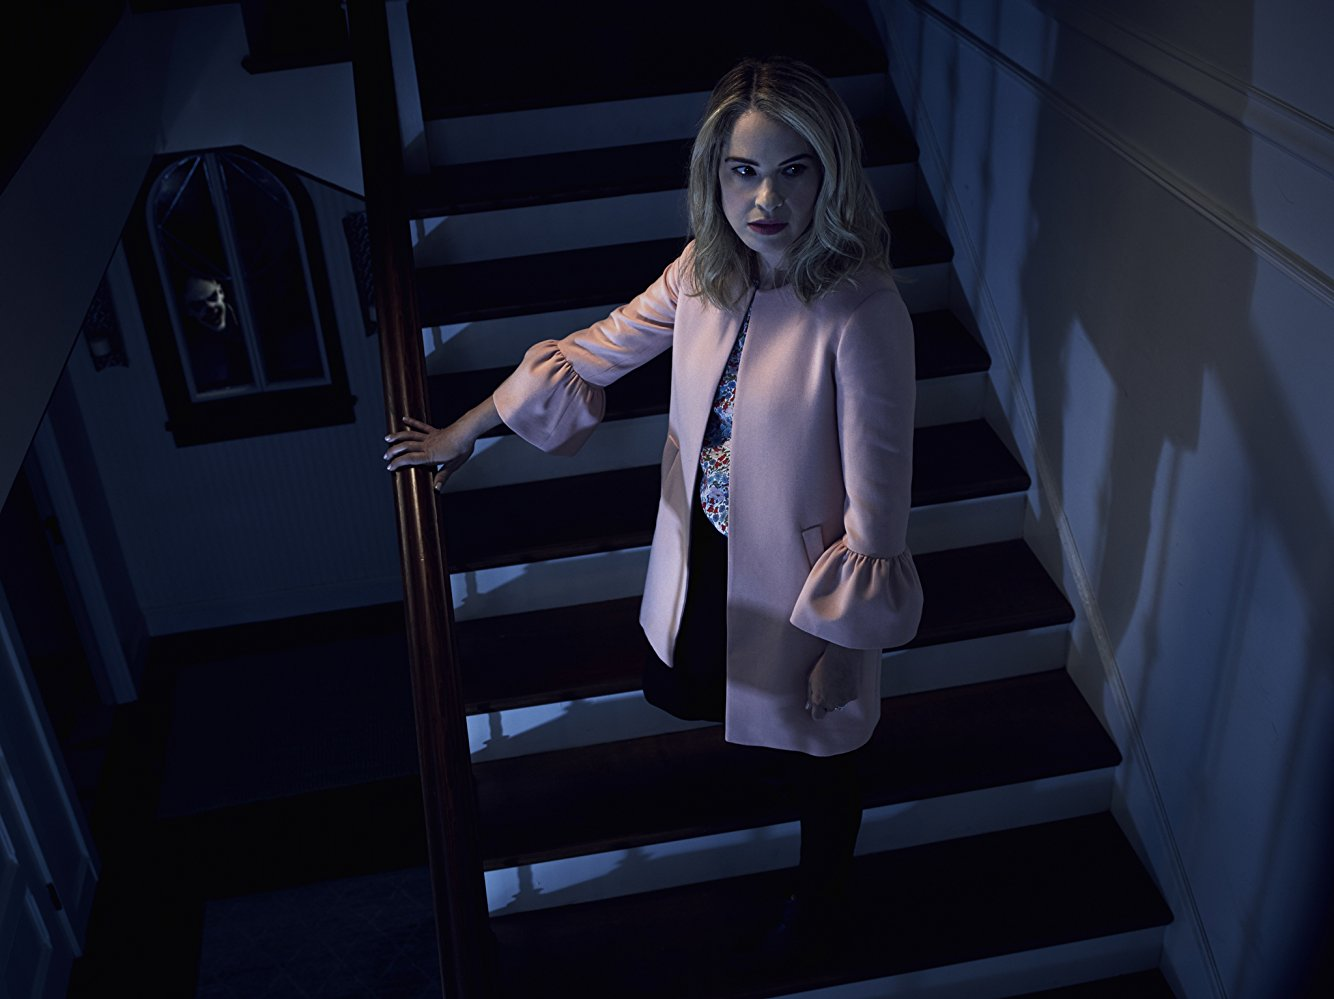 'American Horror Story: Cult' Character Promotional Photo